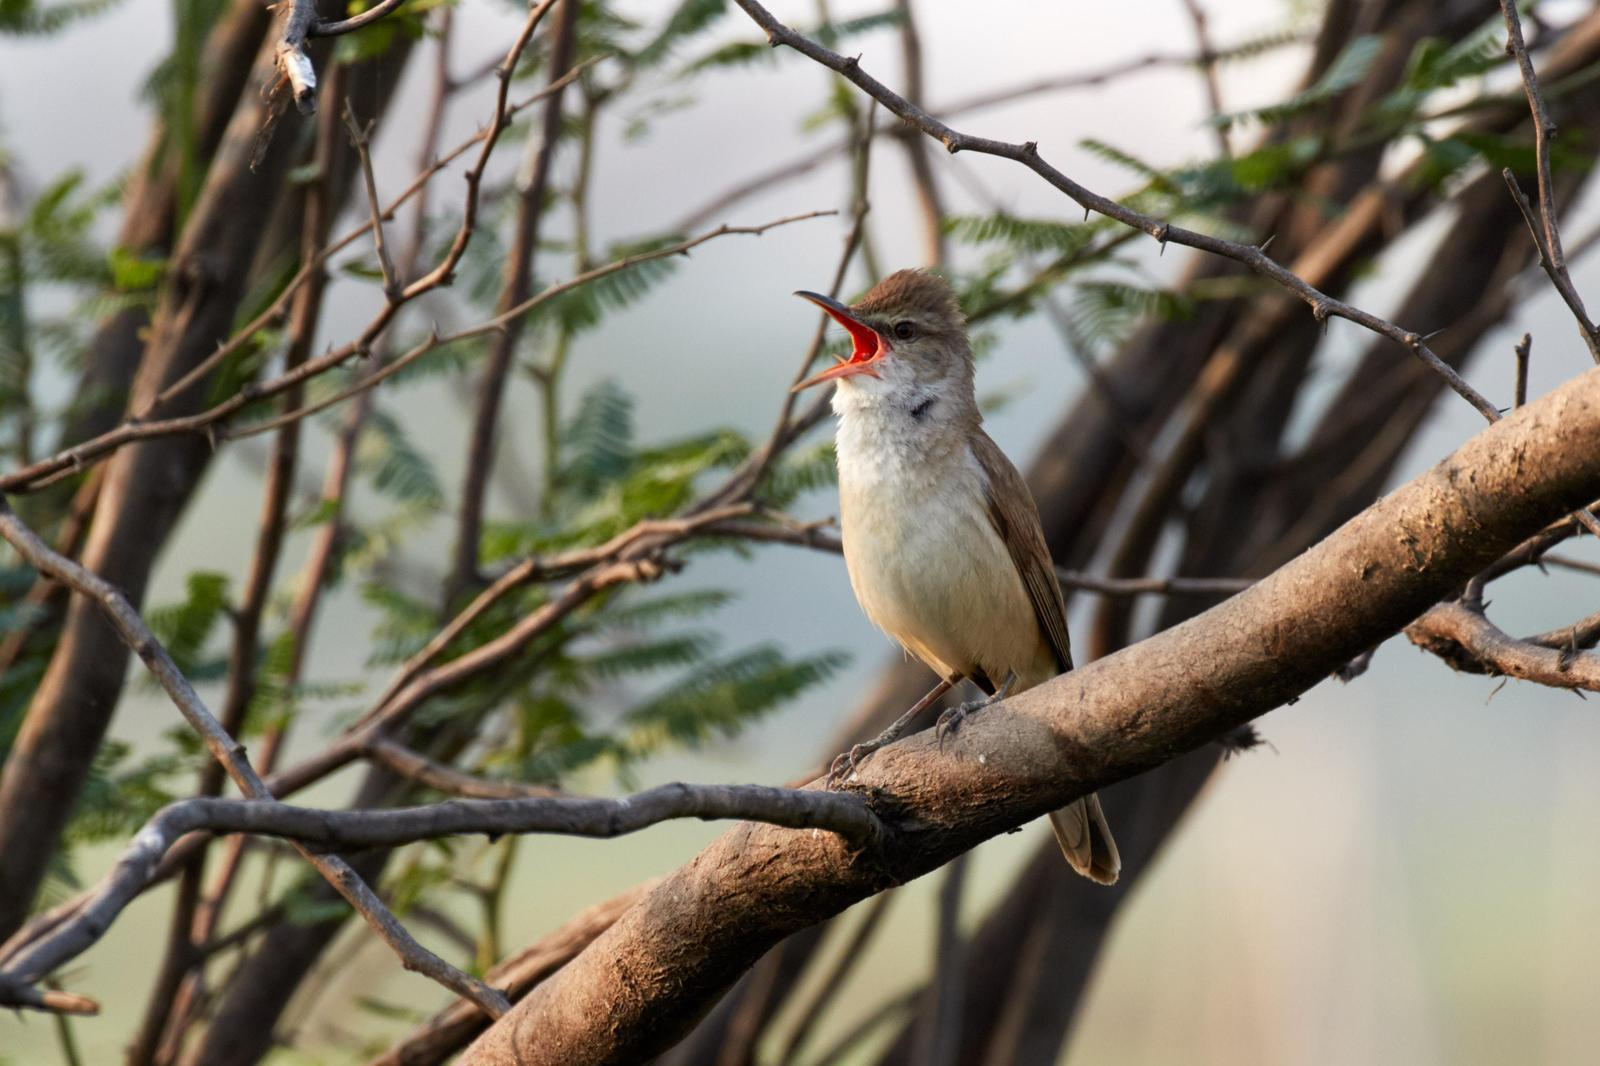 Clamorous Reed Warbler Photo by Simepreet Cheema